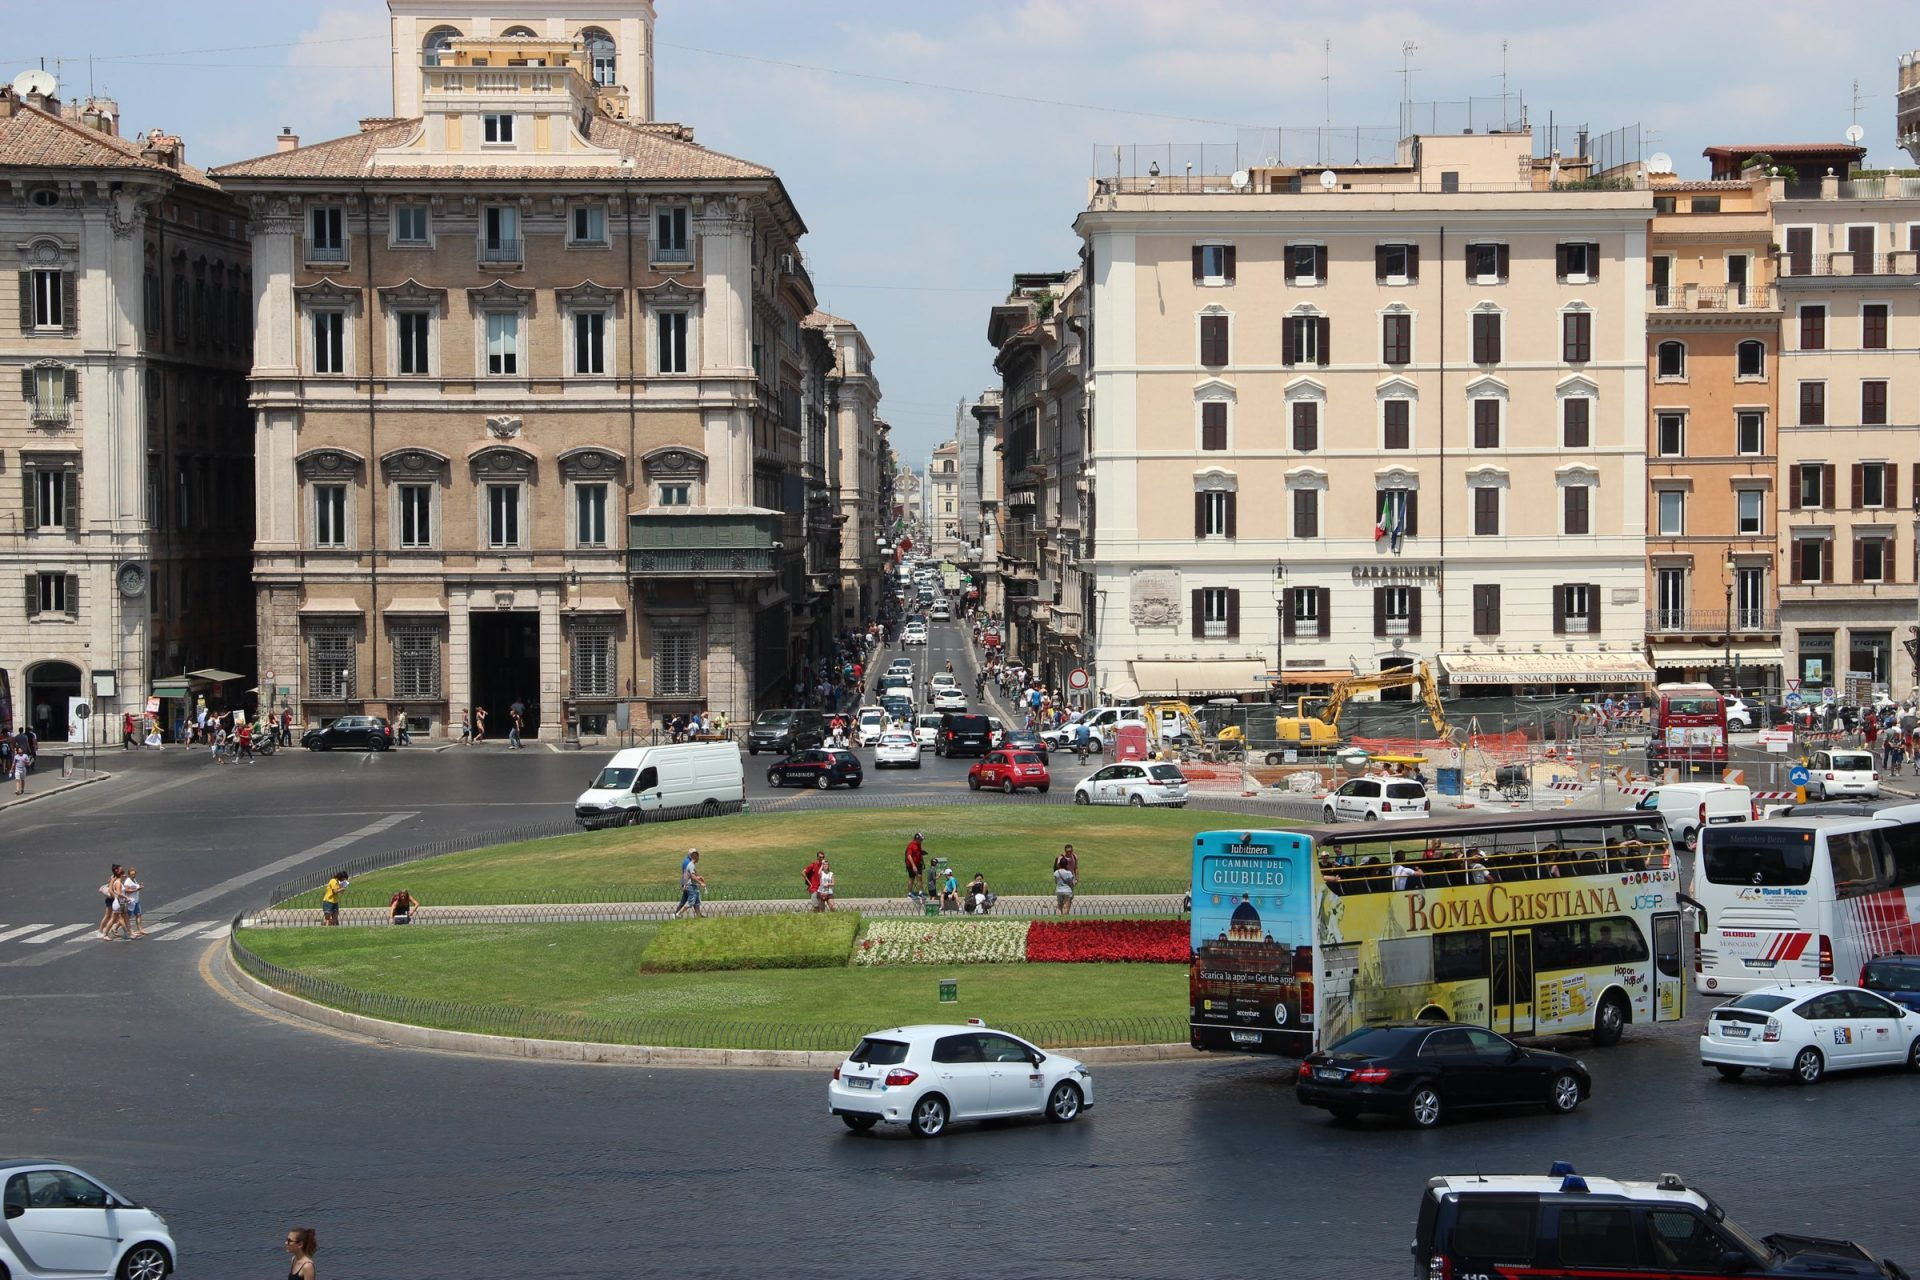 Traffic And Buildings At Roundabout In Rome